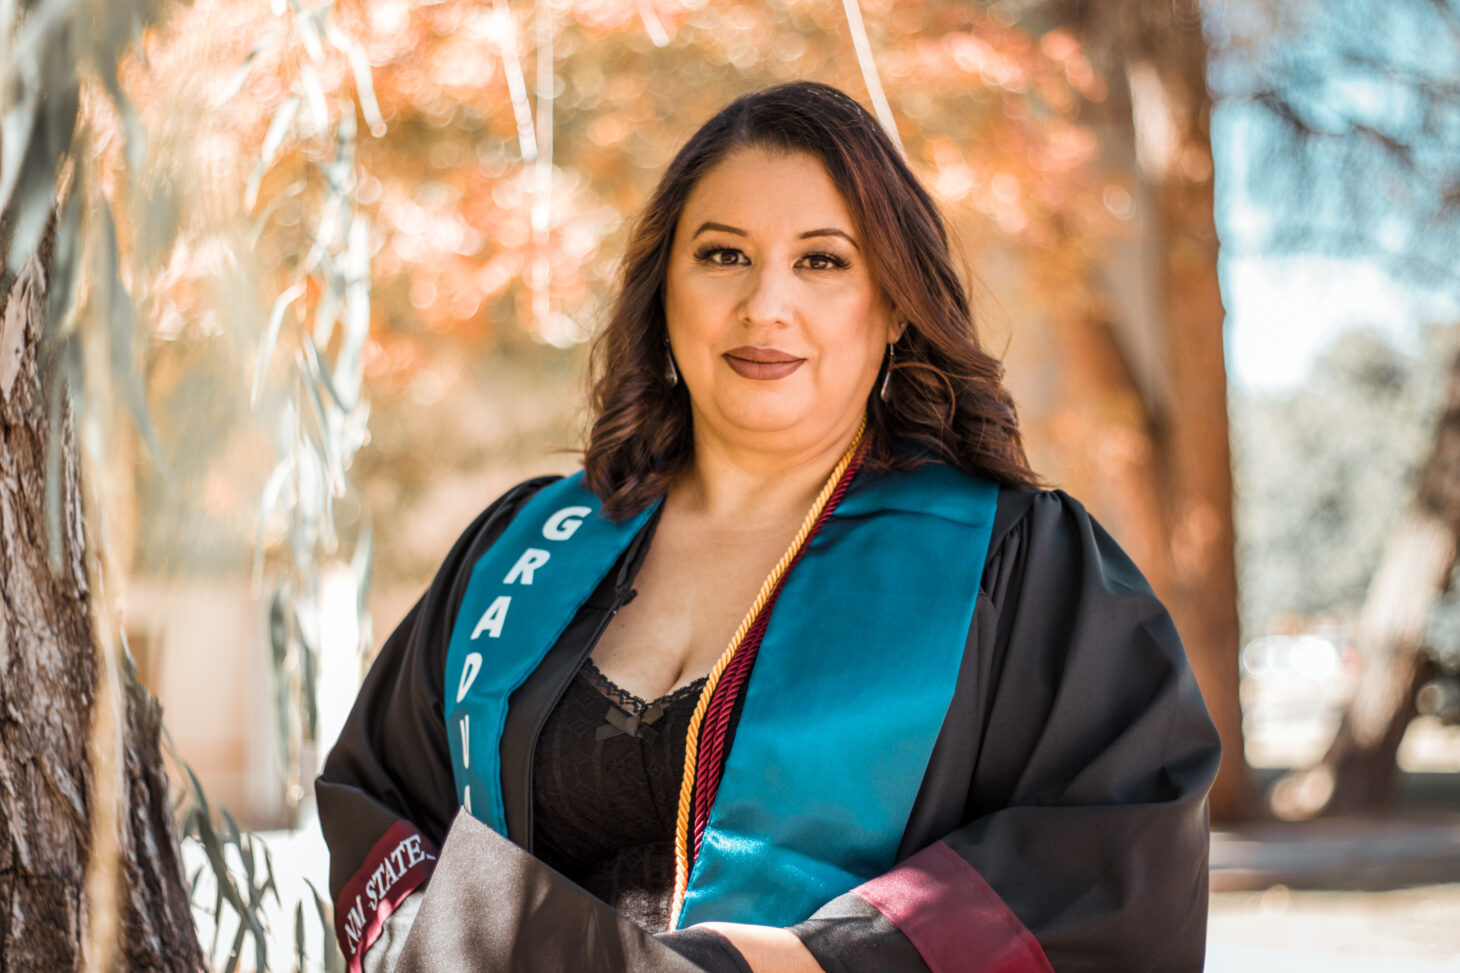 Lisa Keller is a fall 2020 New Mexico State University graduate who earned Bachelor of Science from the Hotel, Restaurant and Tourism Management program. | Photo courtesy NMSU